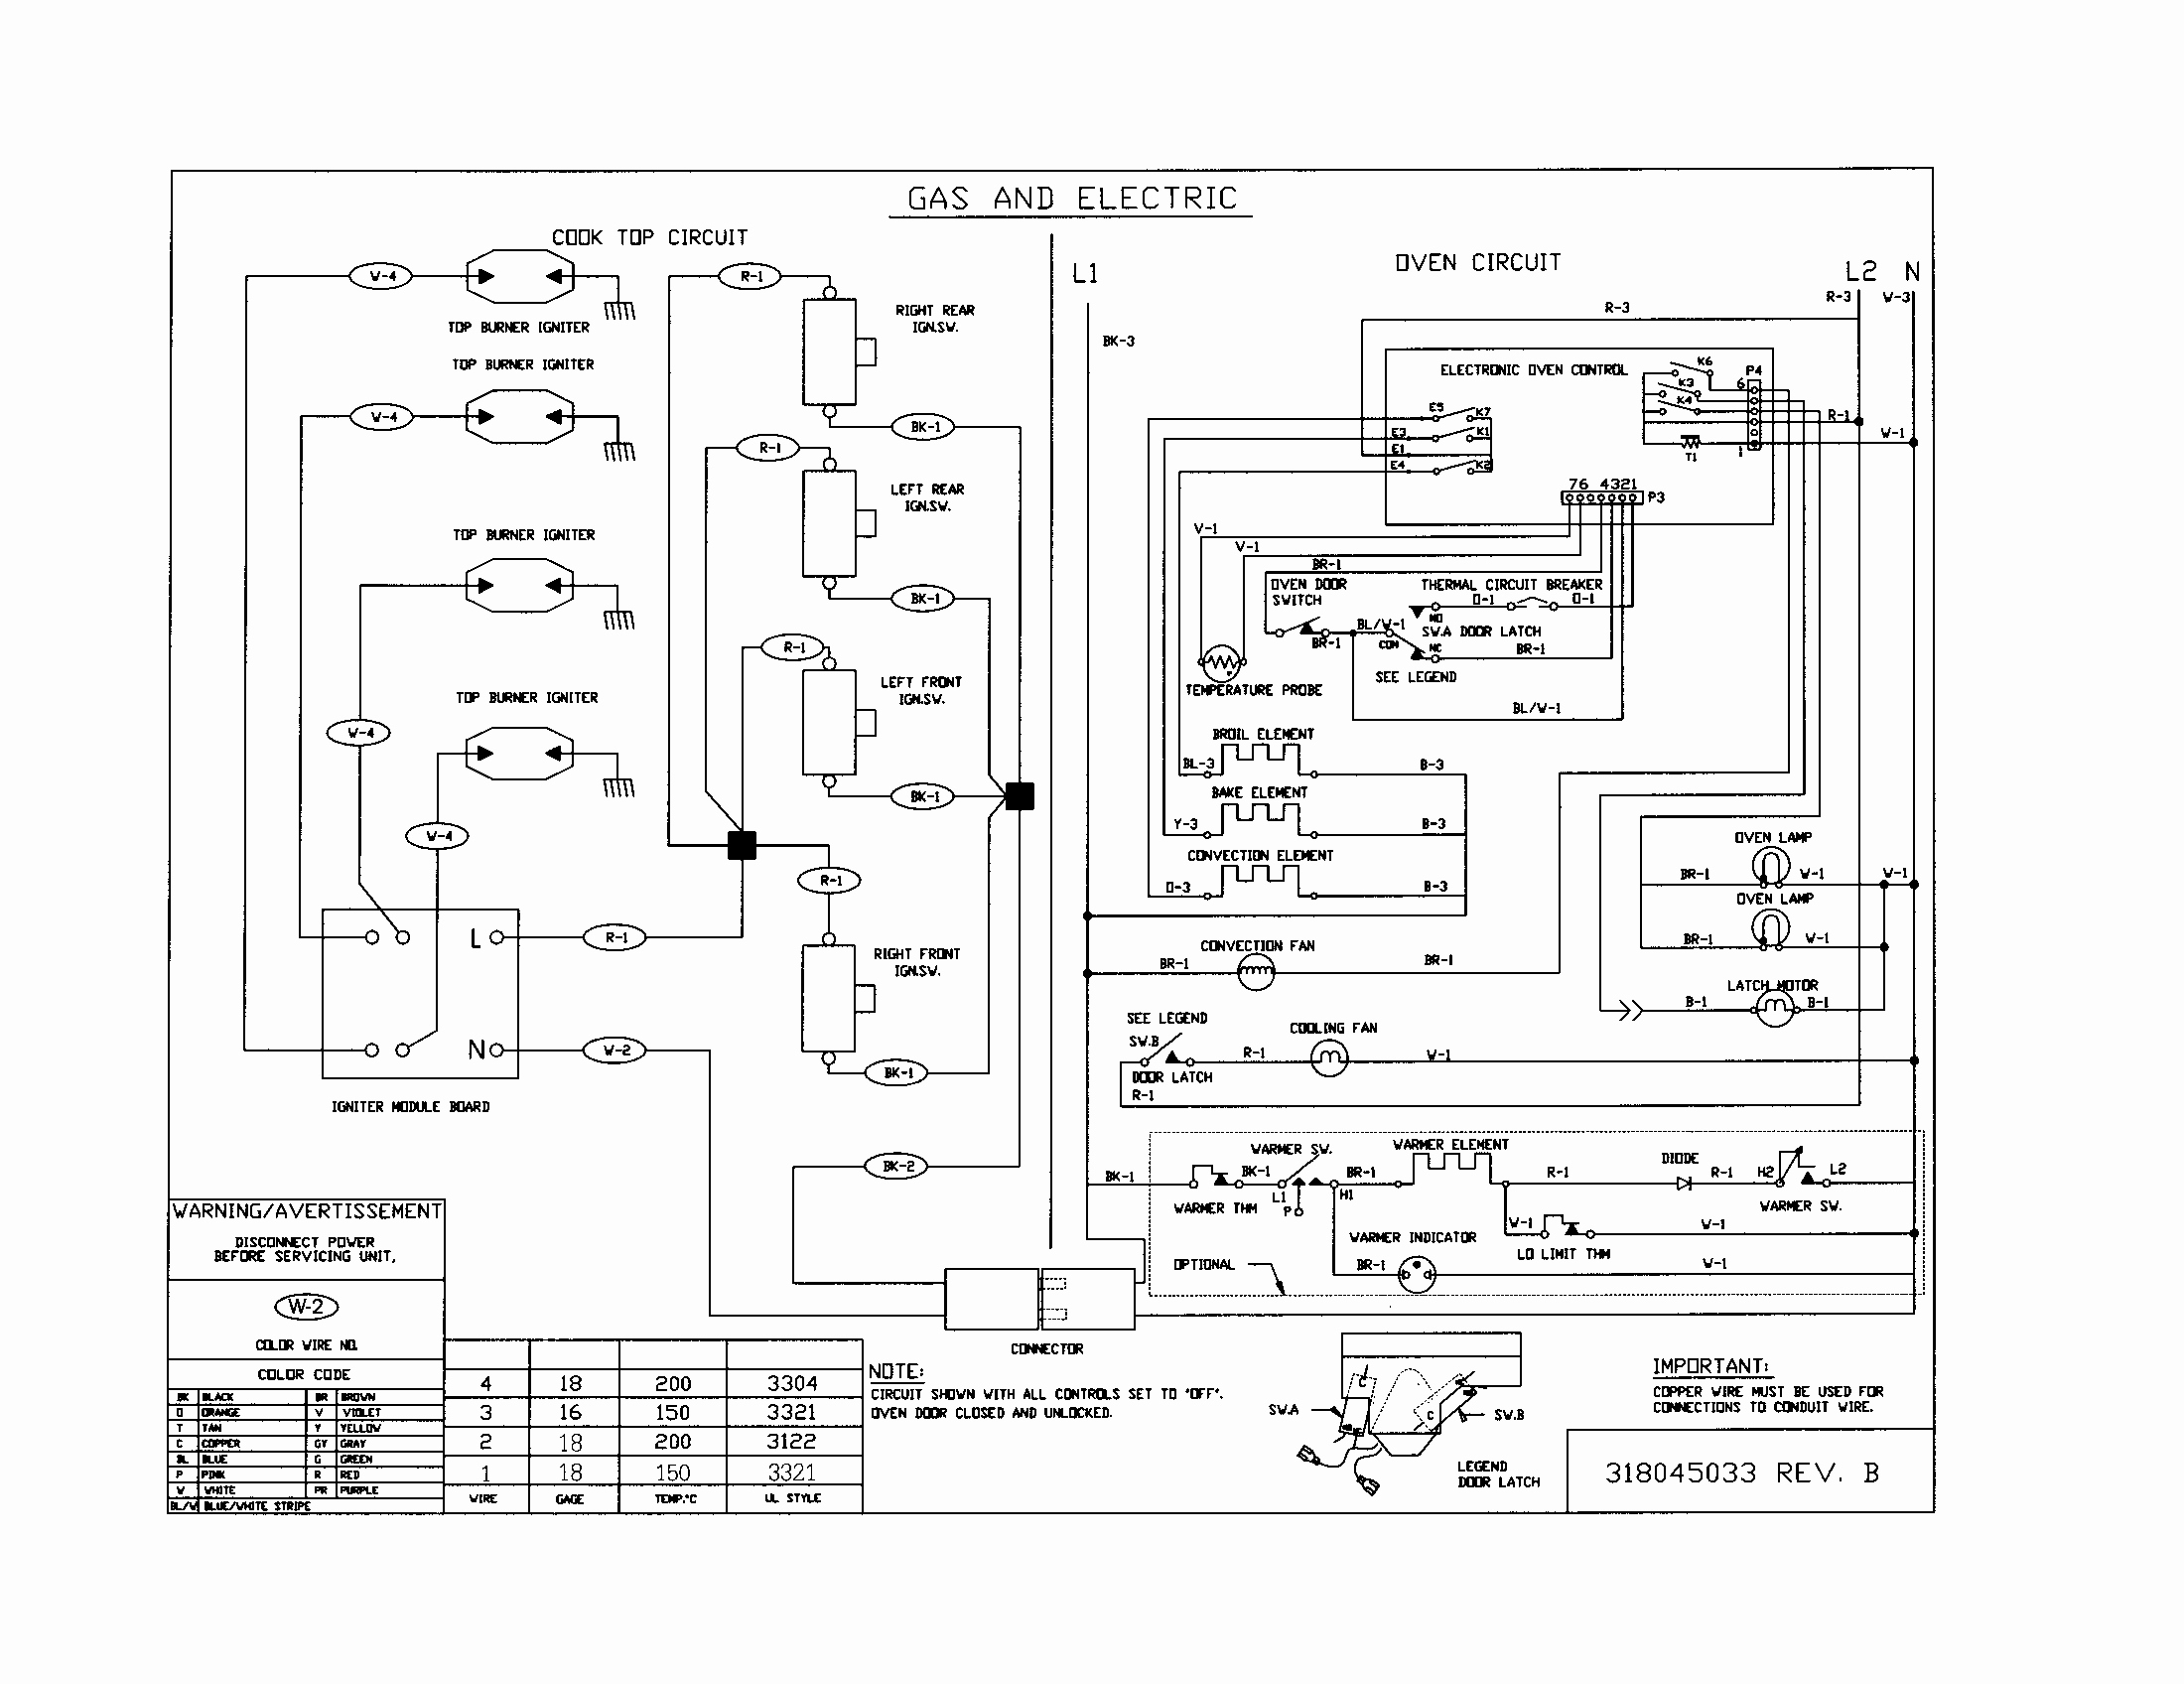 Cabrio Dryer Wiring Diagram on cabrio dryer schematic, whirlpool cabrio platinum wiring diagram, cabrio washing machine wiring diagram, cabrio dryer parts, whirlpool cabrio washer wiring diagram,